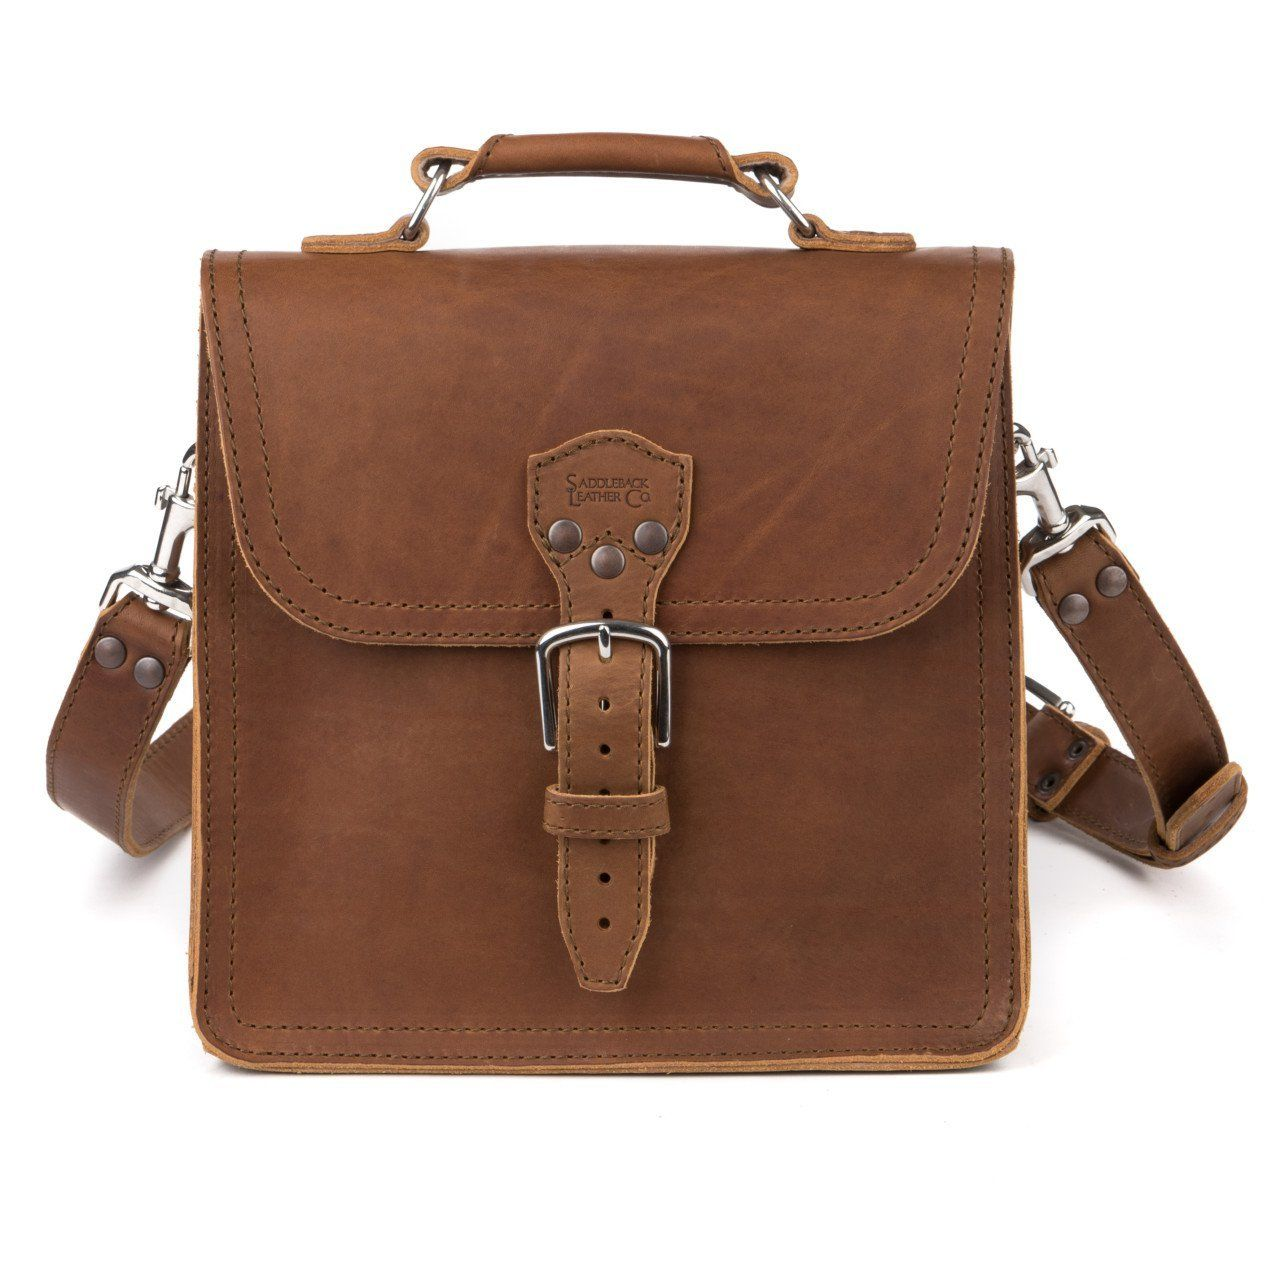 Saddleback Leather Indiana Satchel - Best Leather Satchel Bag for ...